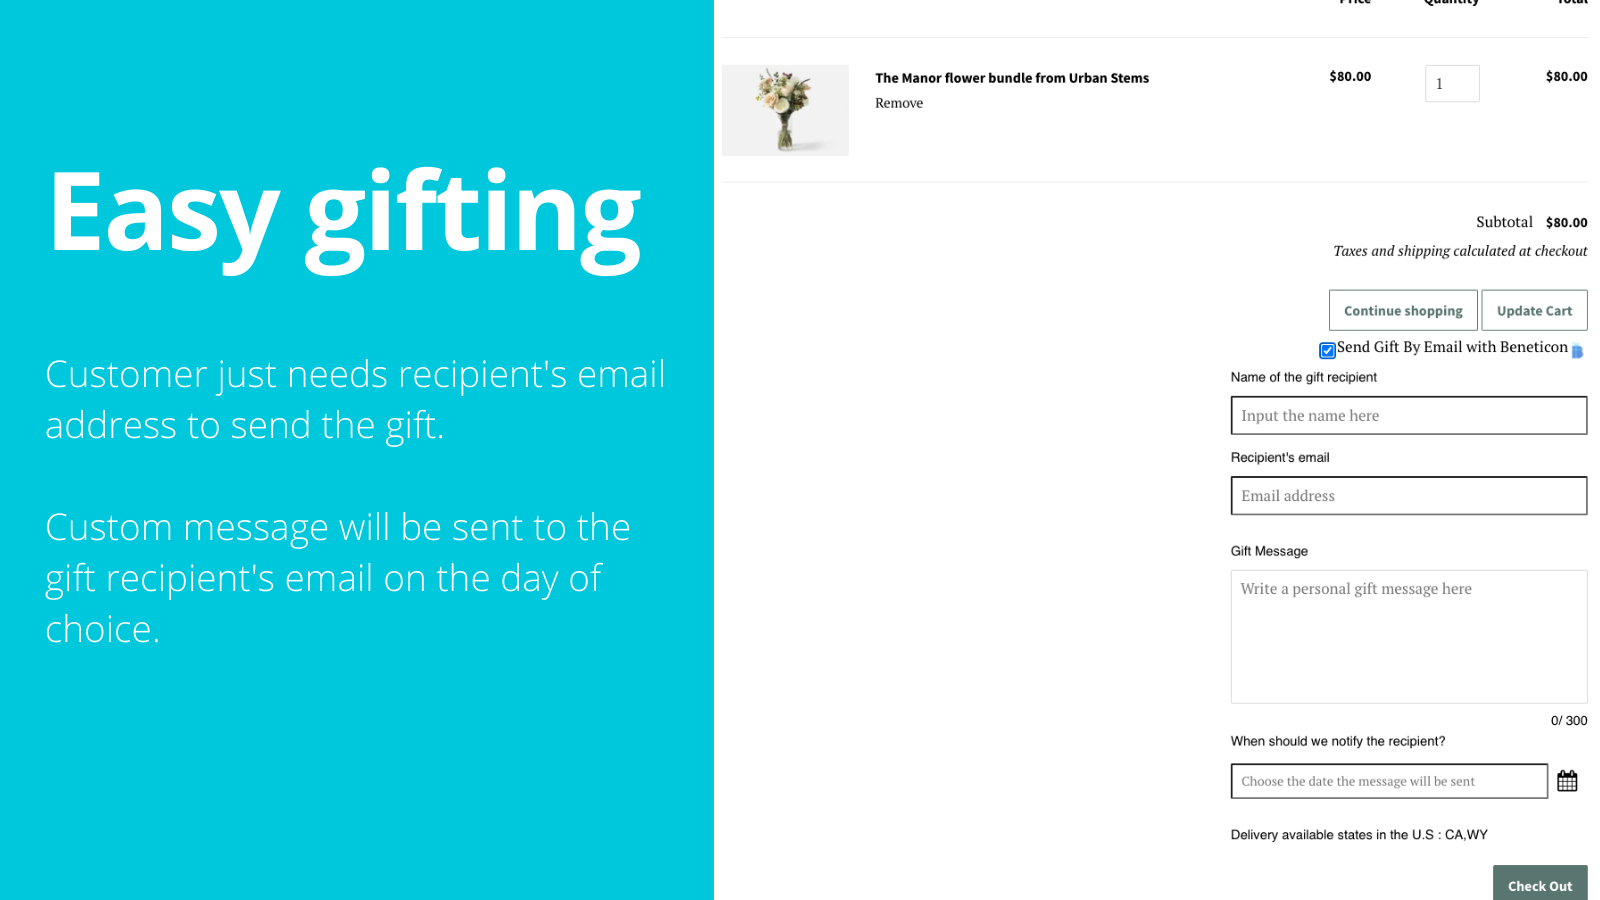 Easy gifting experience for your customers